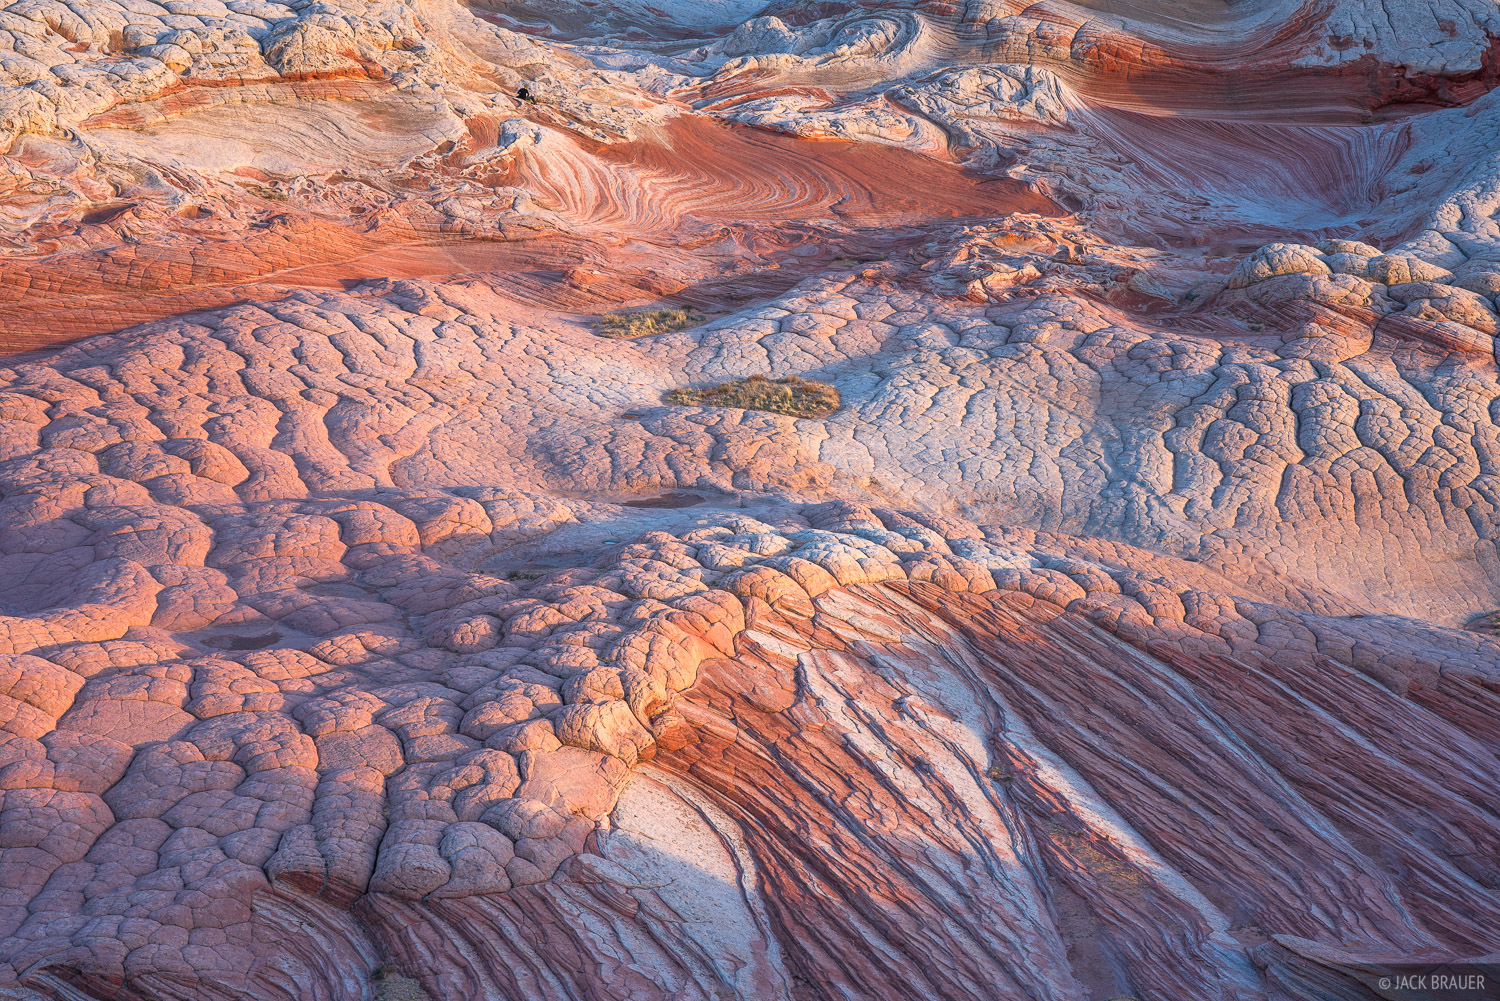 Arizona, Utah, Vermilion Cliffs National Monument, White Pocket, photo